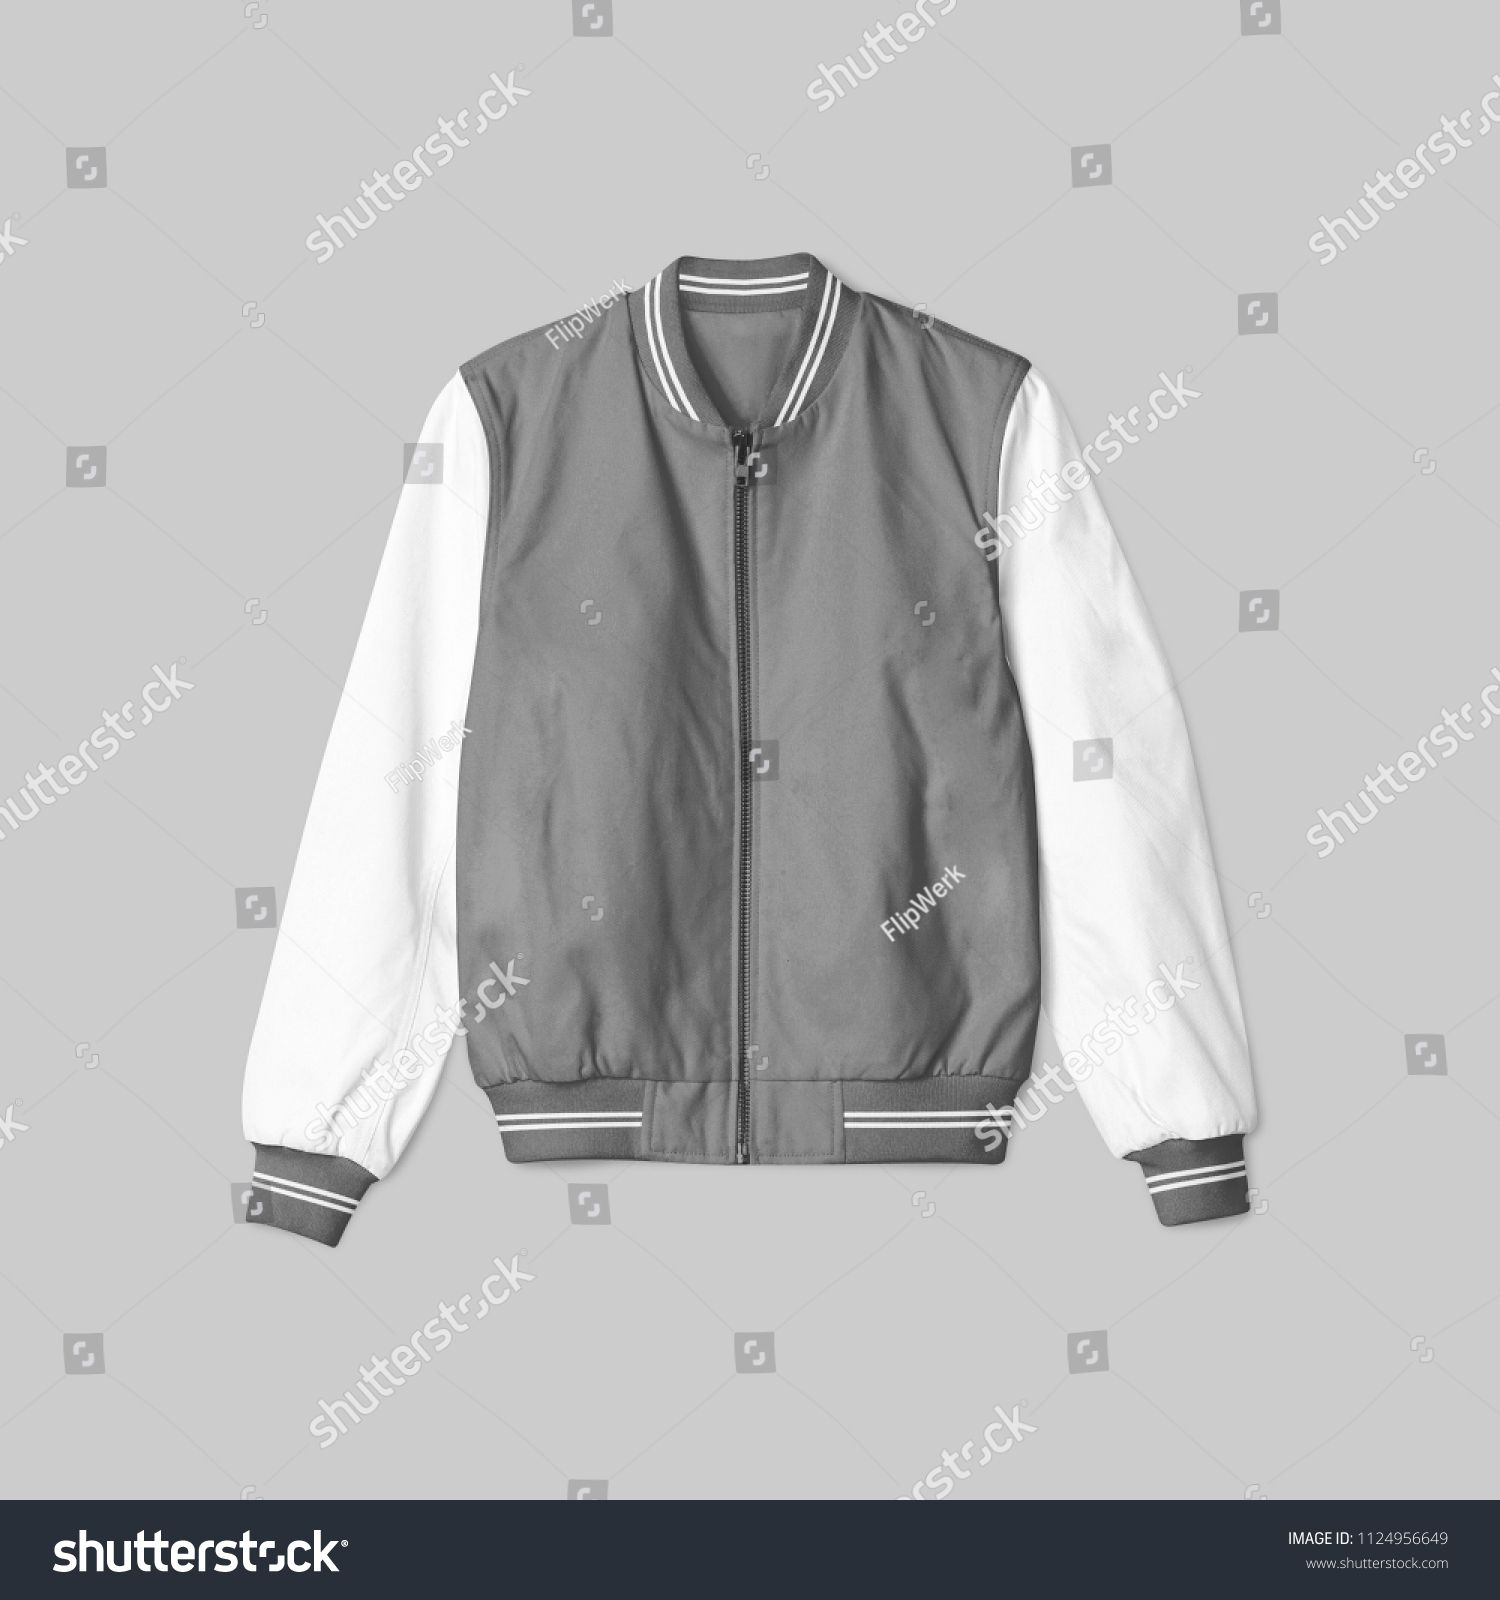 Download Blank Jacket Satin Baseball Grey And White Color On Grey Background For Mockup Template Isolated In Front View Baseball Grey And White Jackets Gray Background